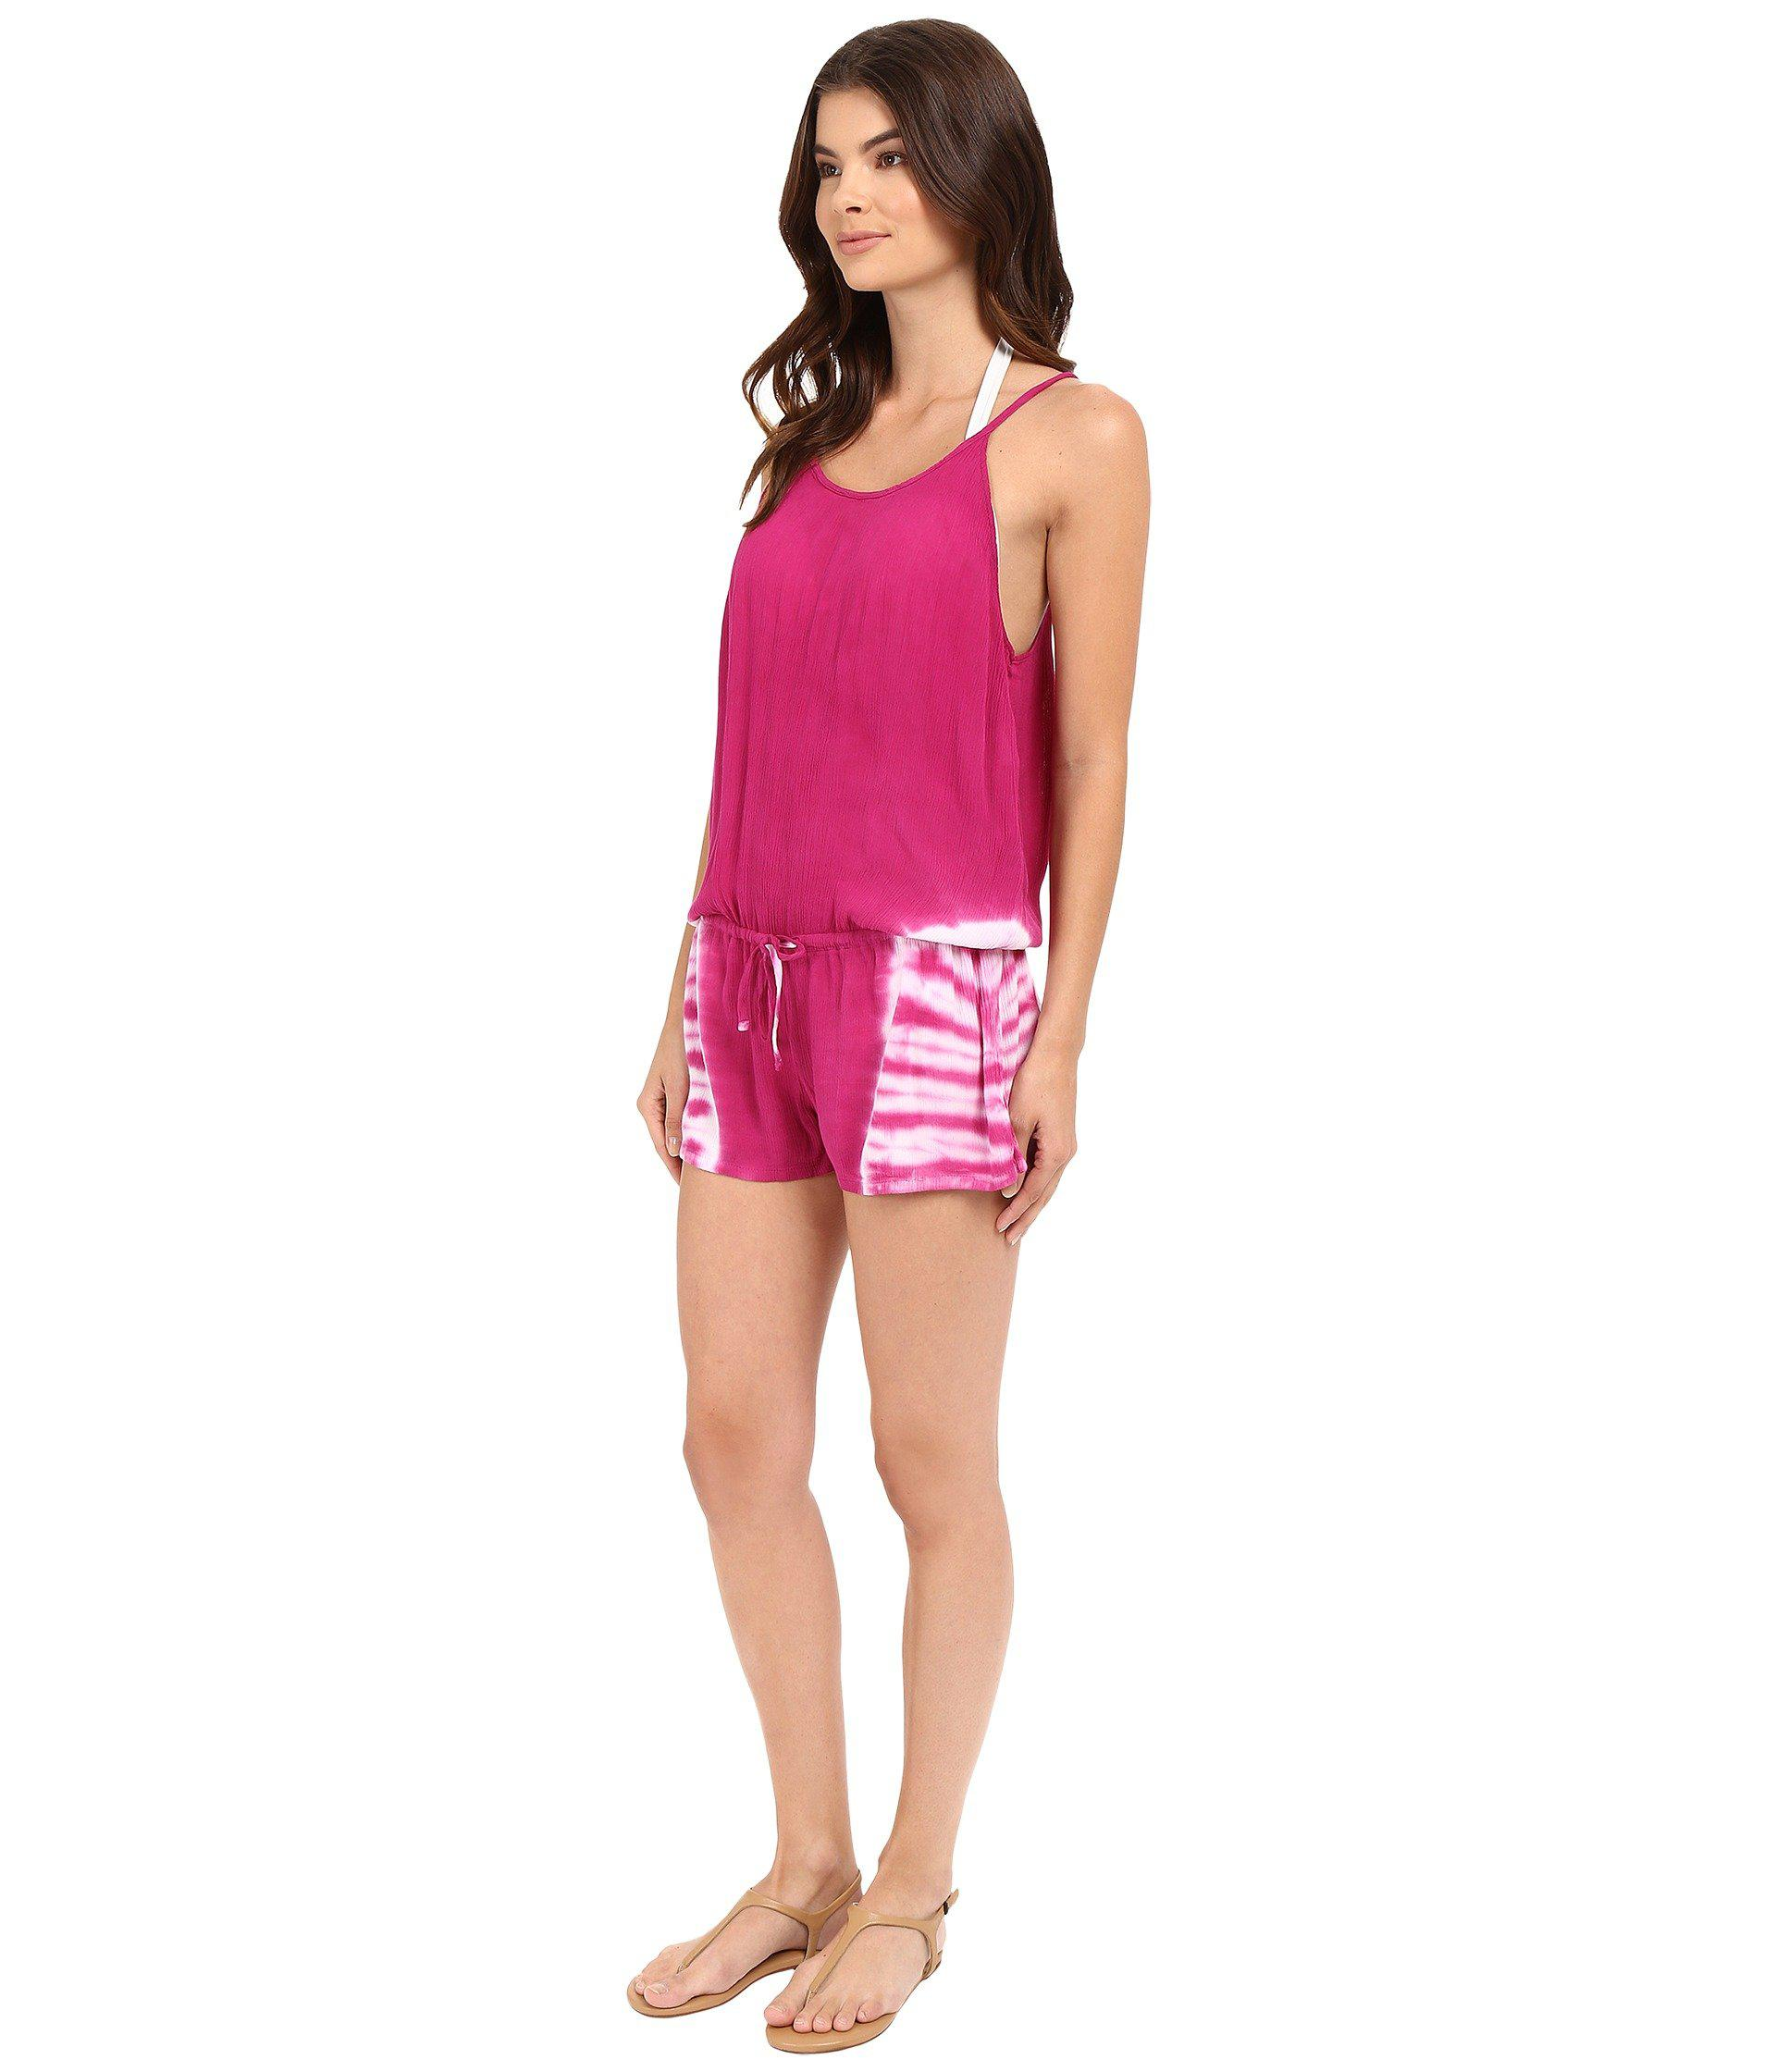 e2ddd99203fbf Lyst - Lucky Brand Hazy Day Romper Cover-up in Pink